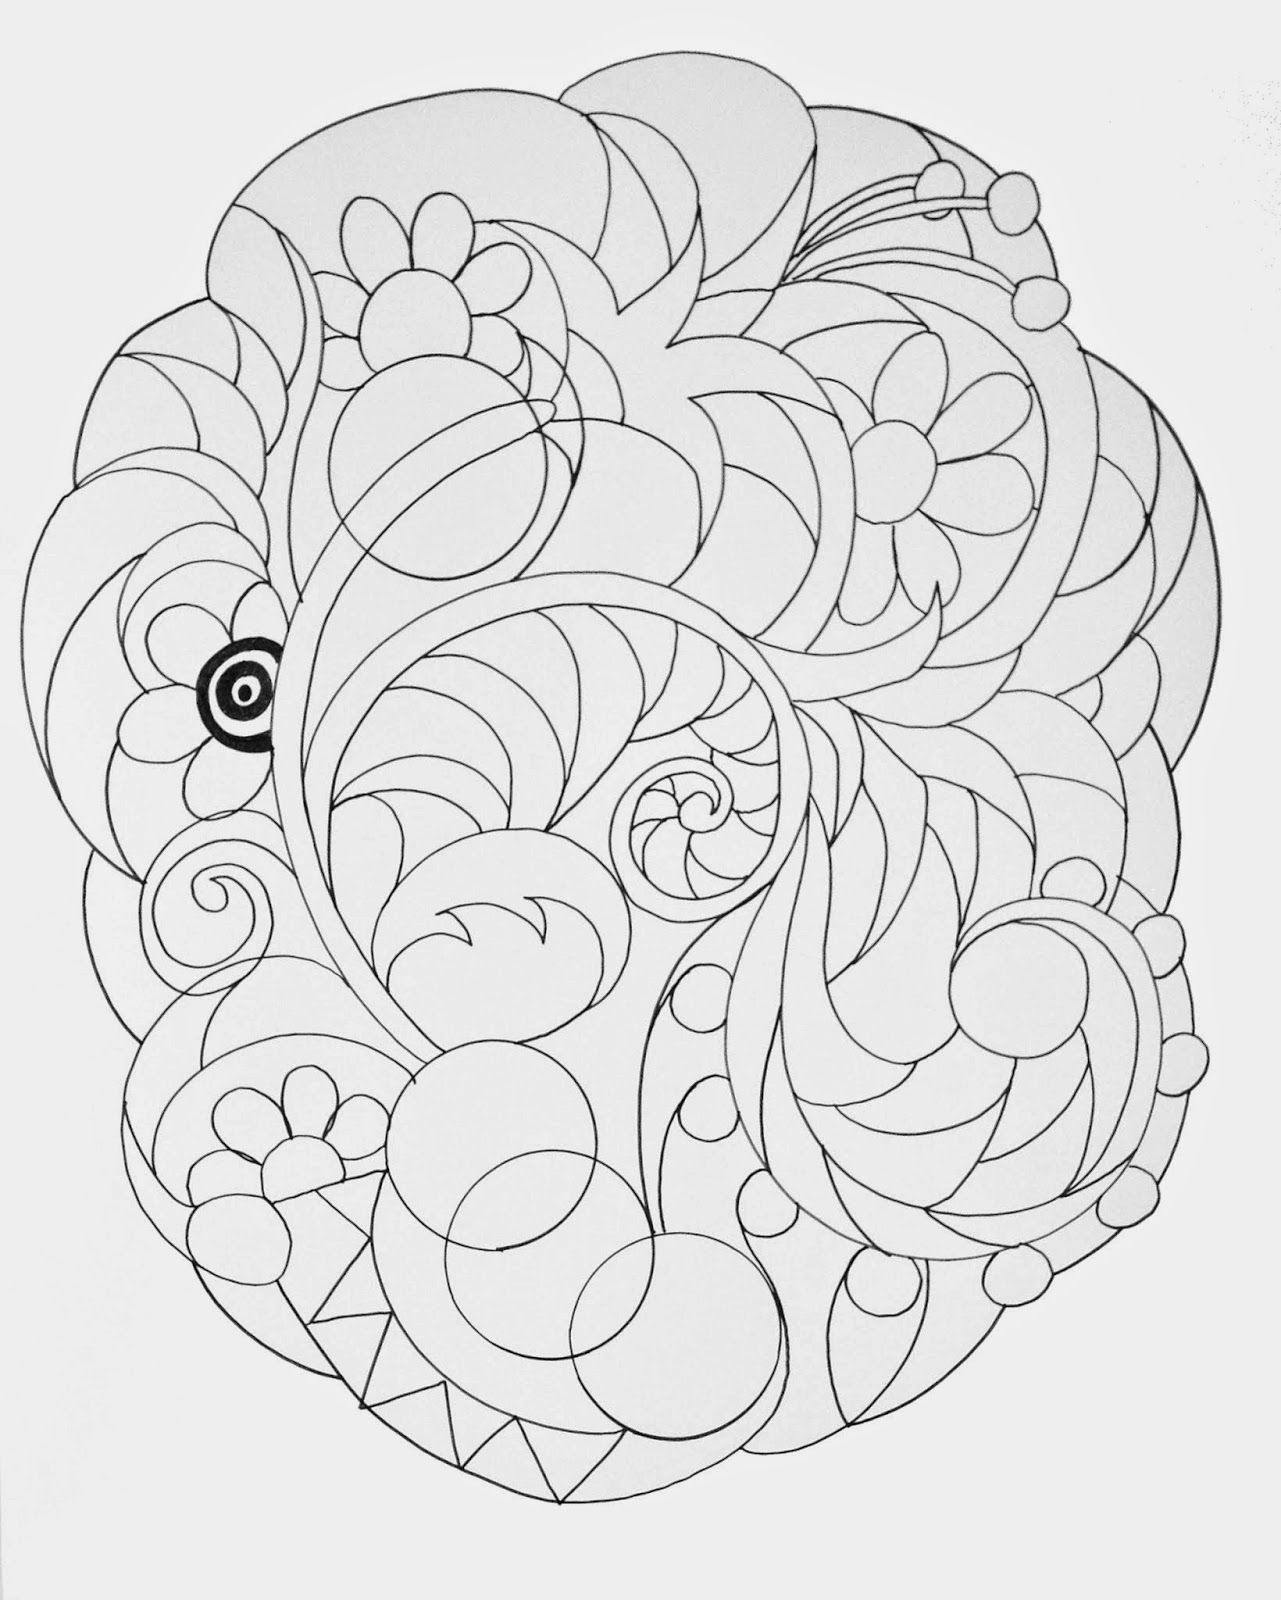 The Newest 20x24 Inch Zentangle Template For Cynthia